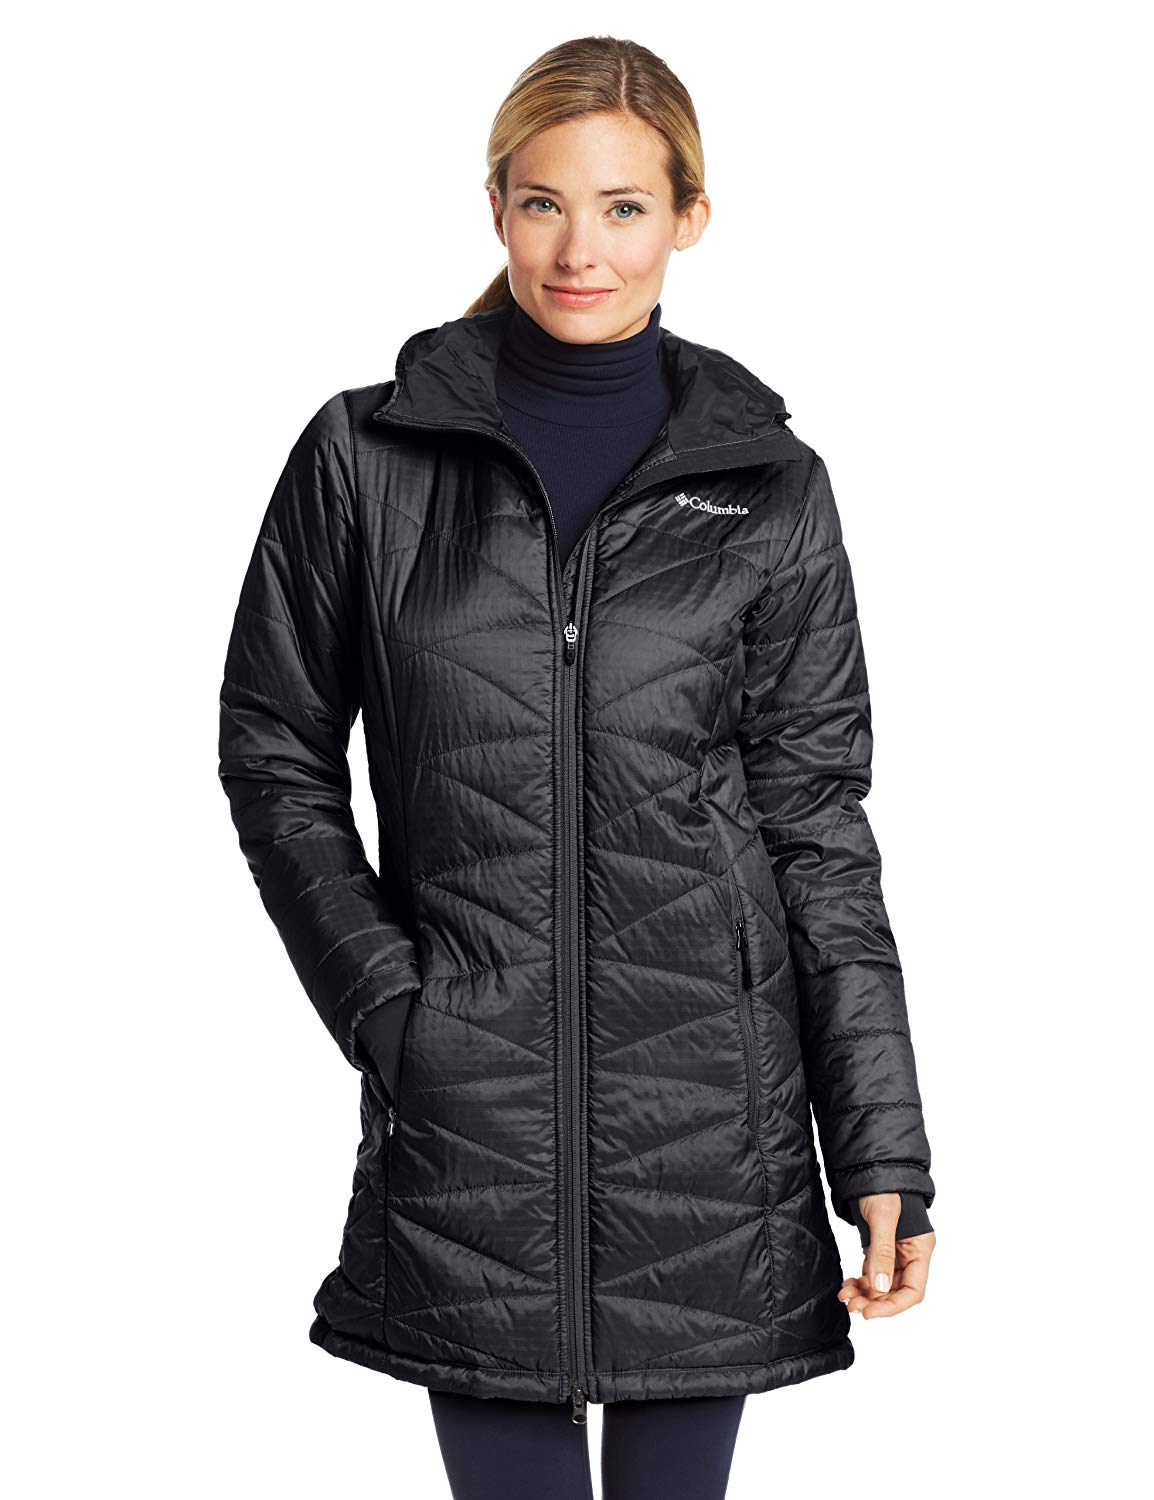 Ladies Lightweight Winter Parka mighty lite hooded jacket XDSXSML